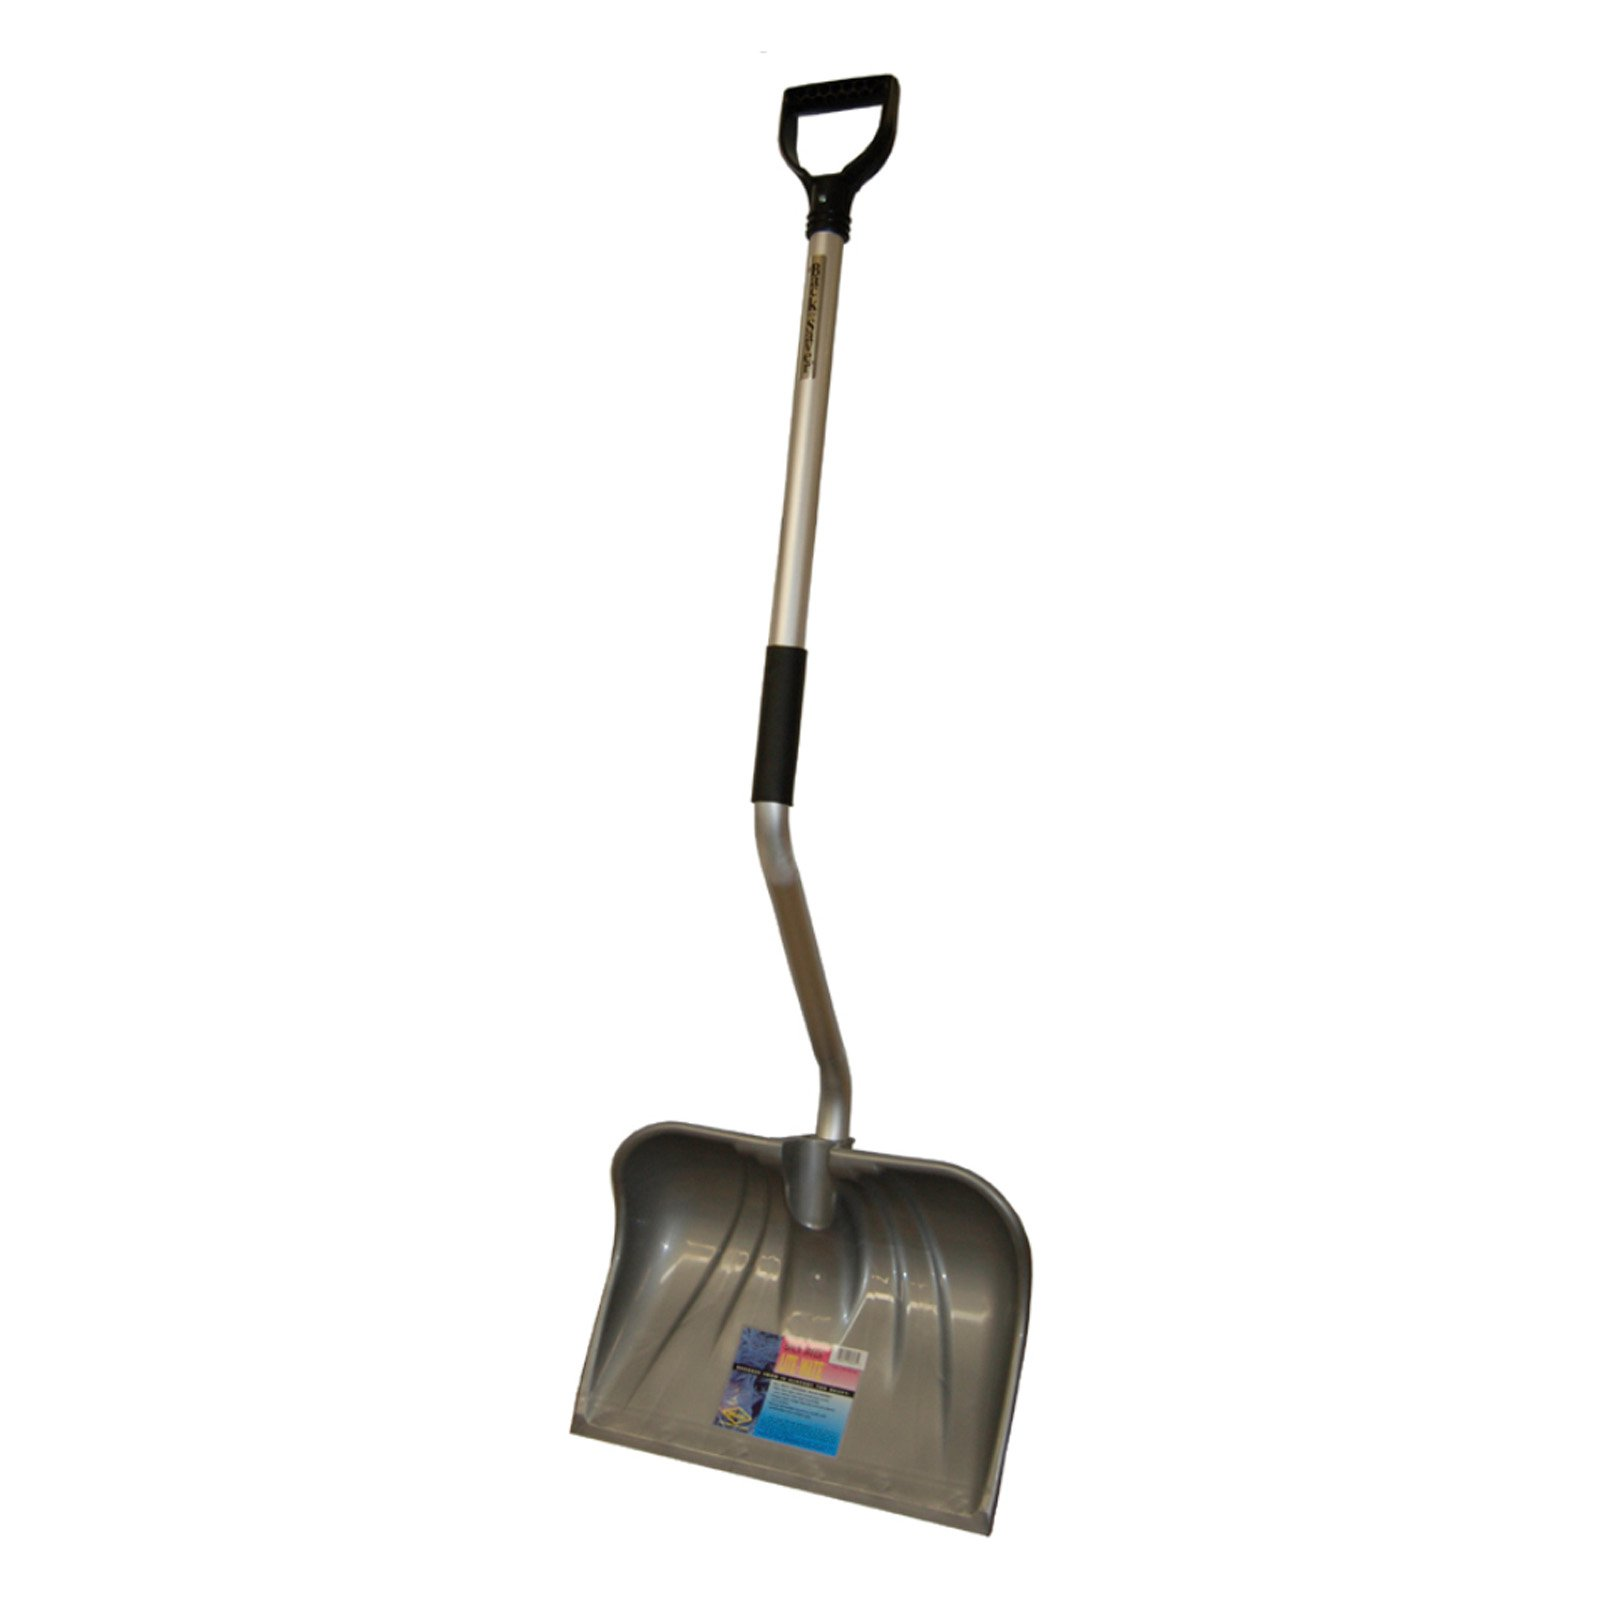 Back-Saver 52 in. Ergonomic Steel Snow Shovel with Wearstrip by Rugg Mfg.